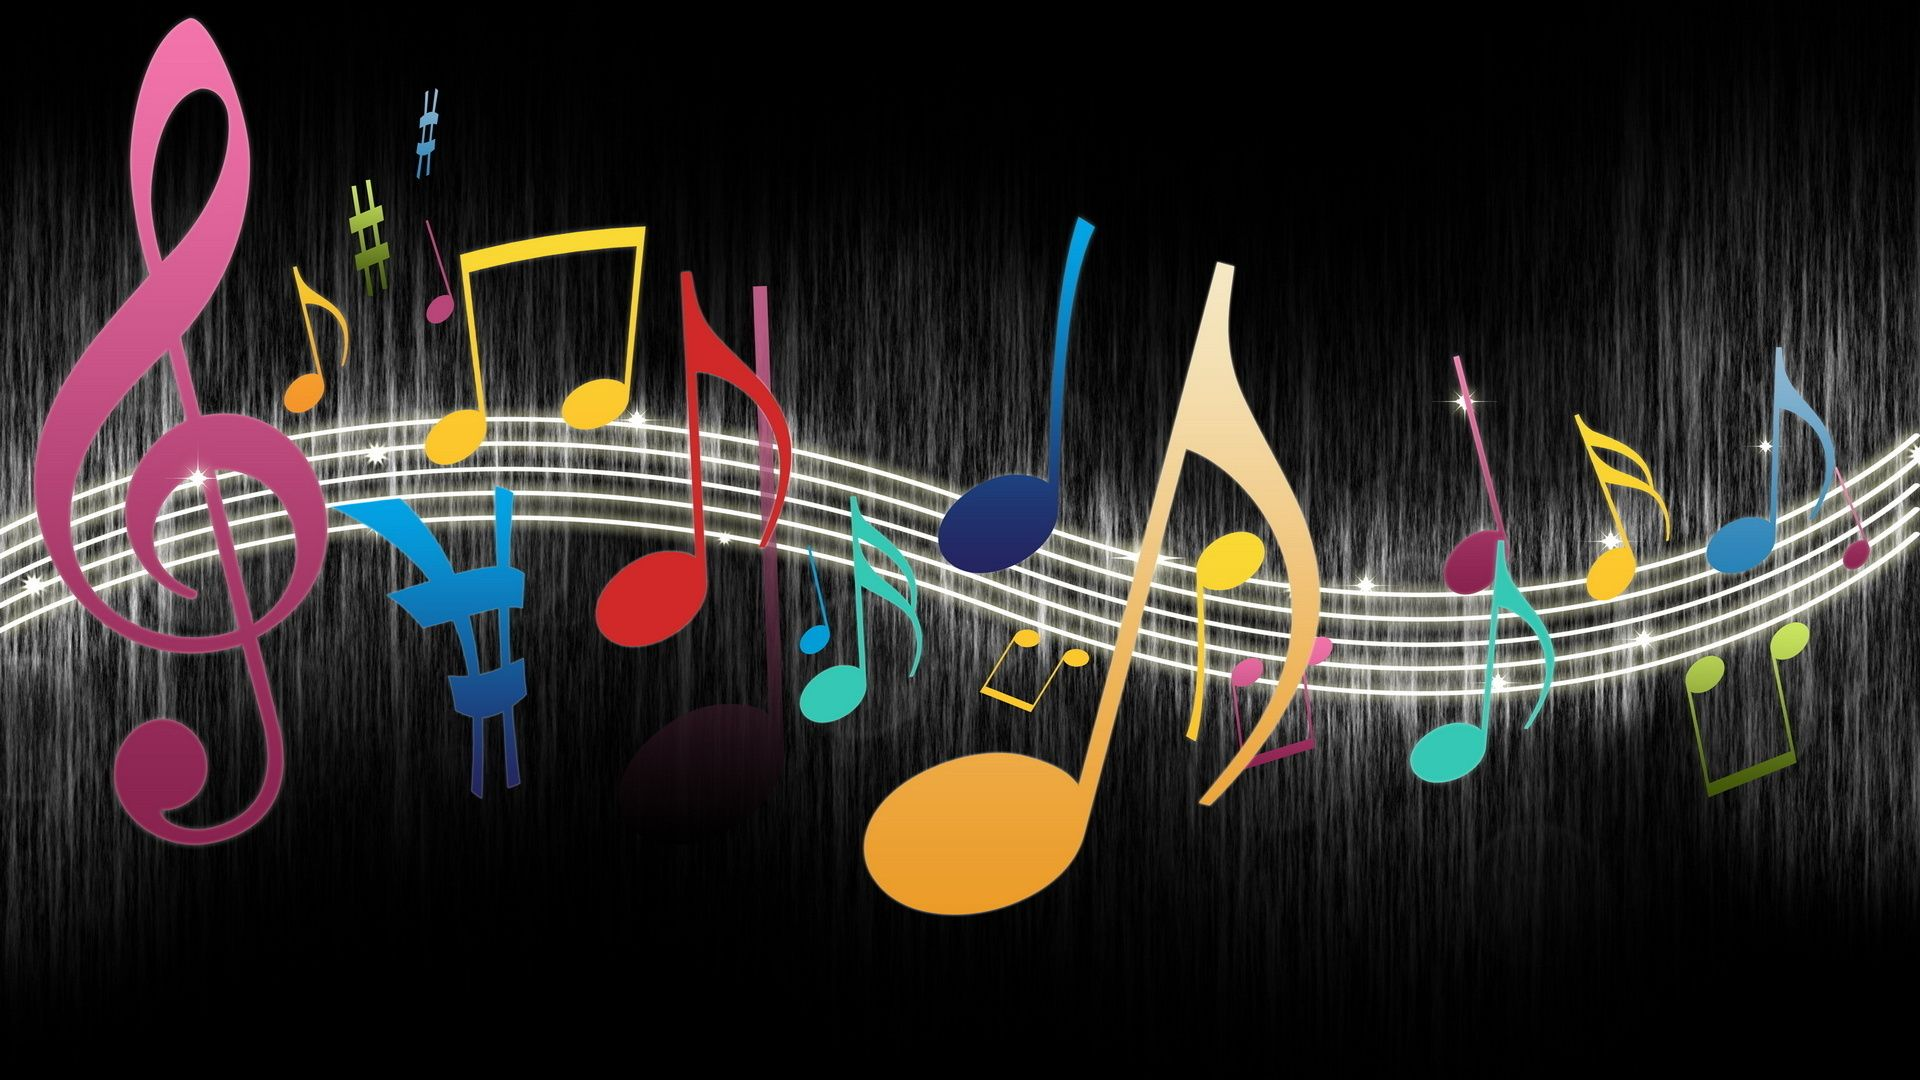 Colorful Music Notes Wallpaper Widescreen 2 HD Wallpapers